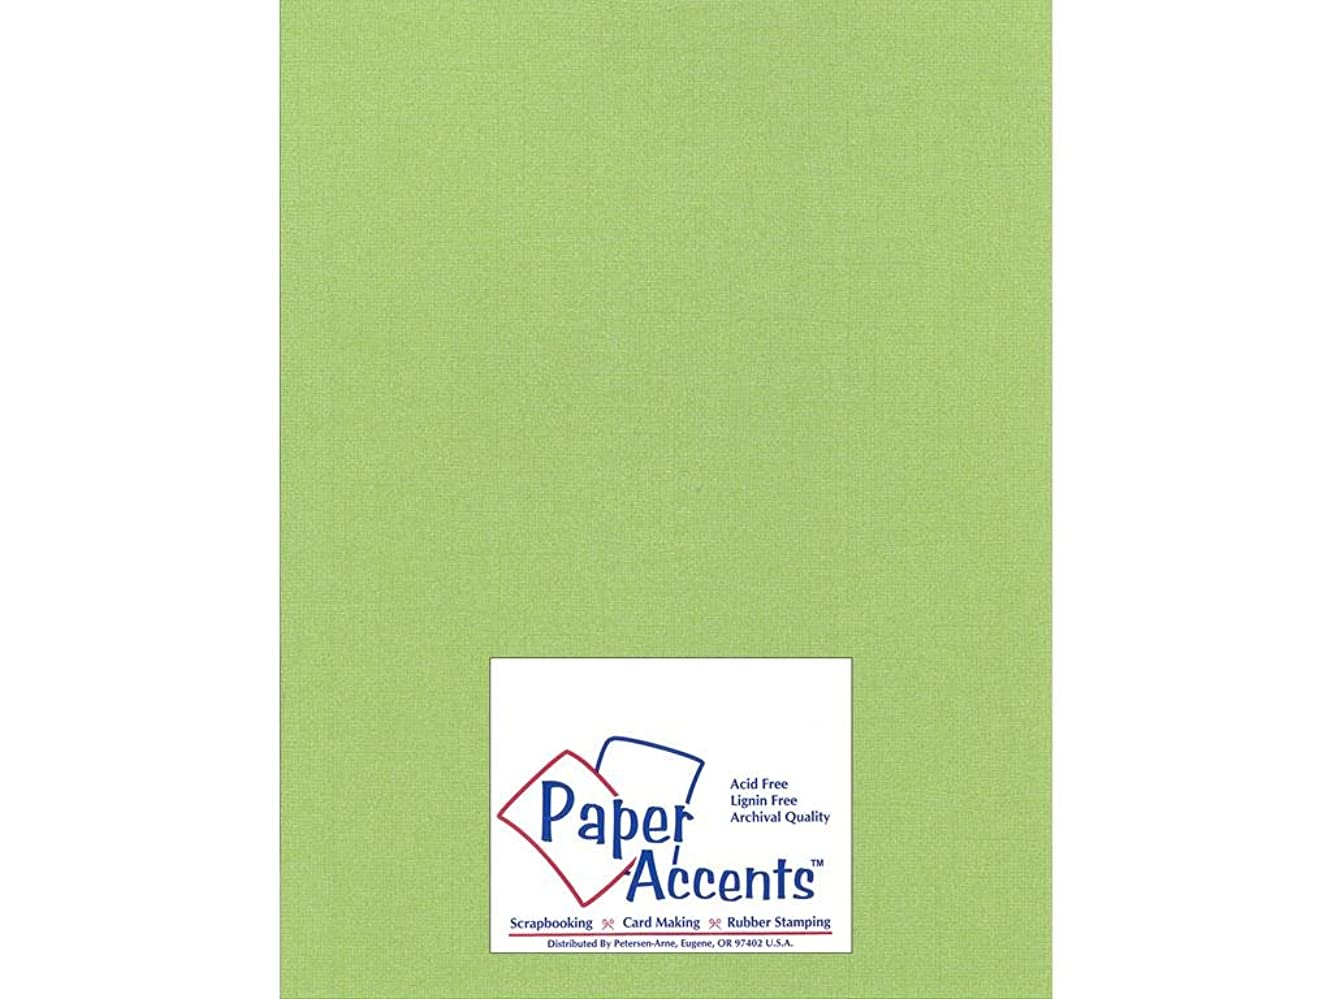 Accent Design Paper Accents Cdstk Glimmer 8.5x11 80# Sparkling Apple